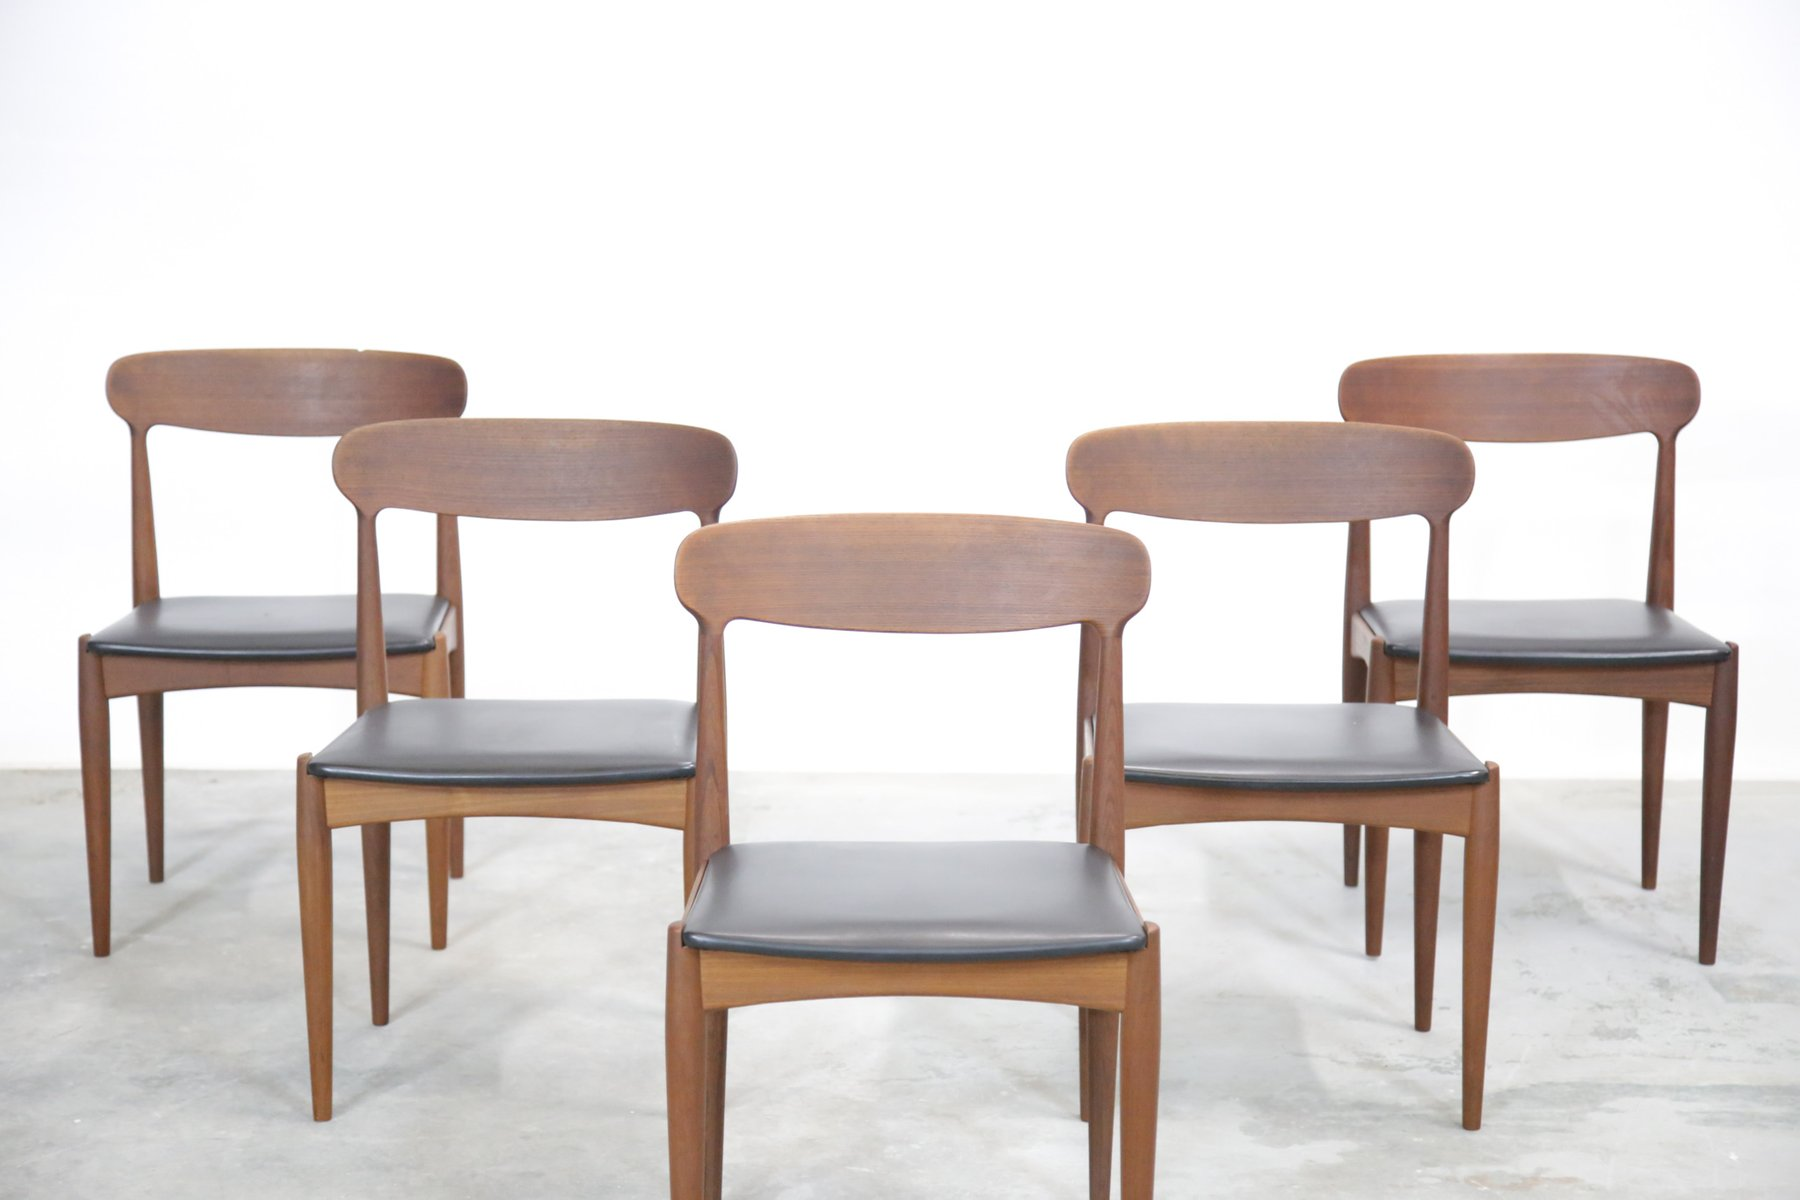 Danish Dining Chairs by Johannes Andersen for Uldum 1960s Set of